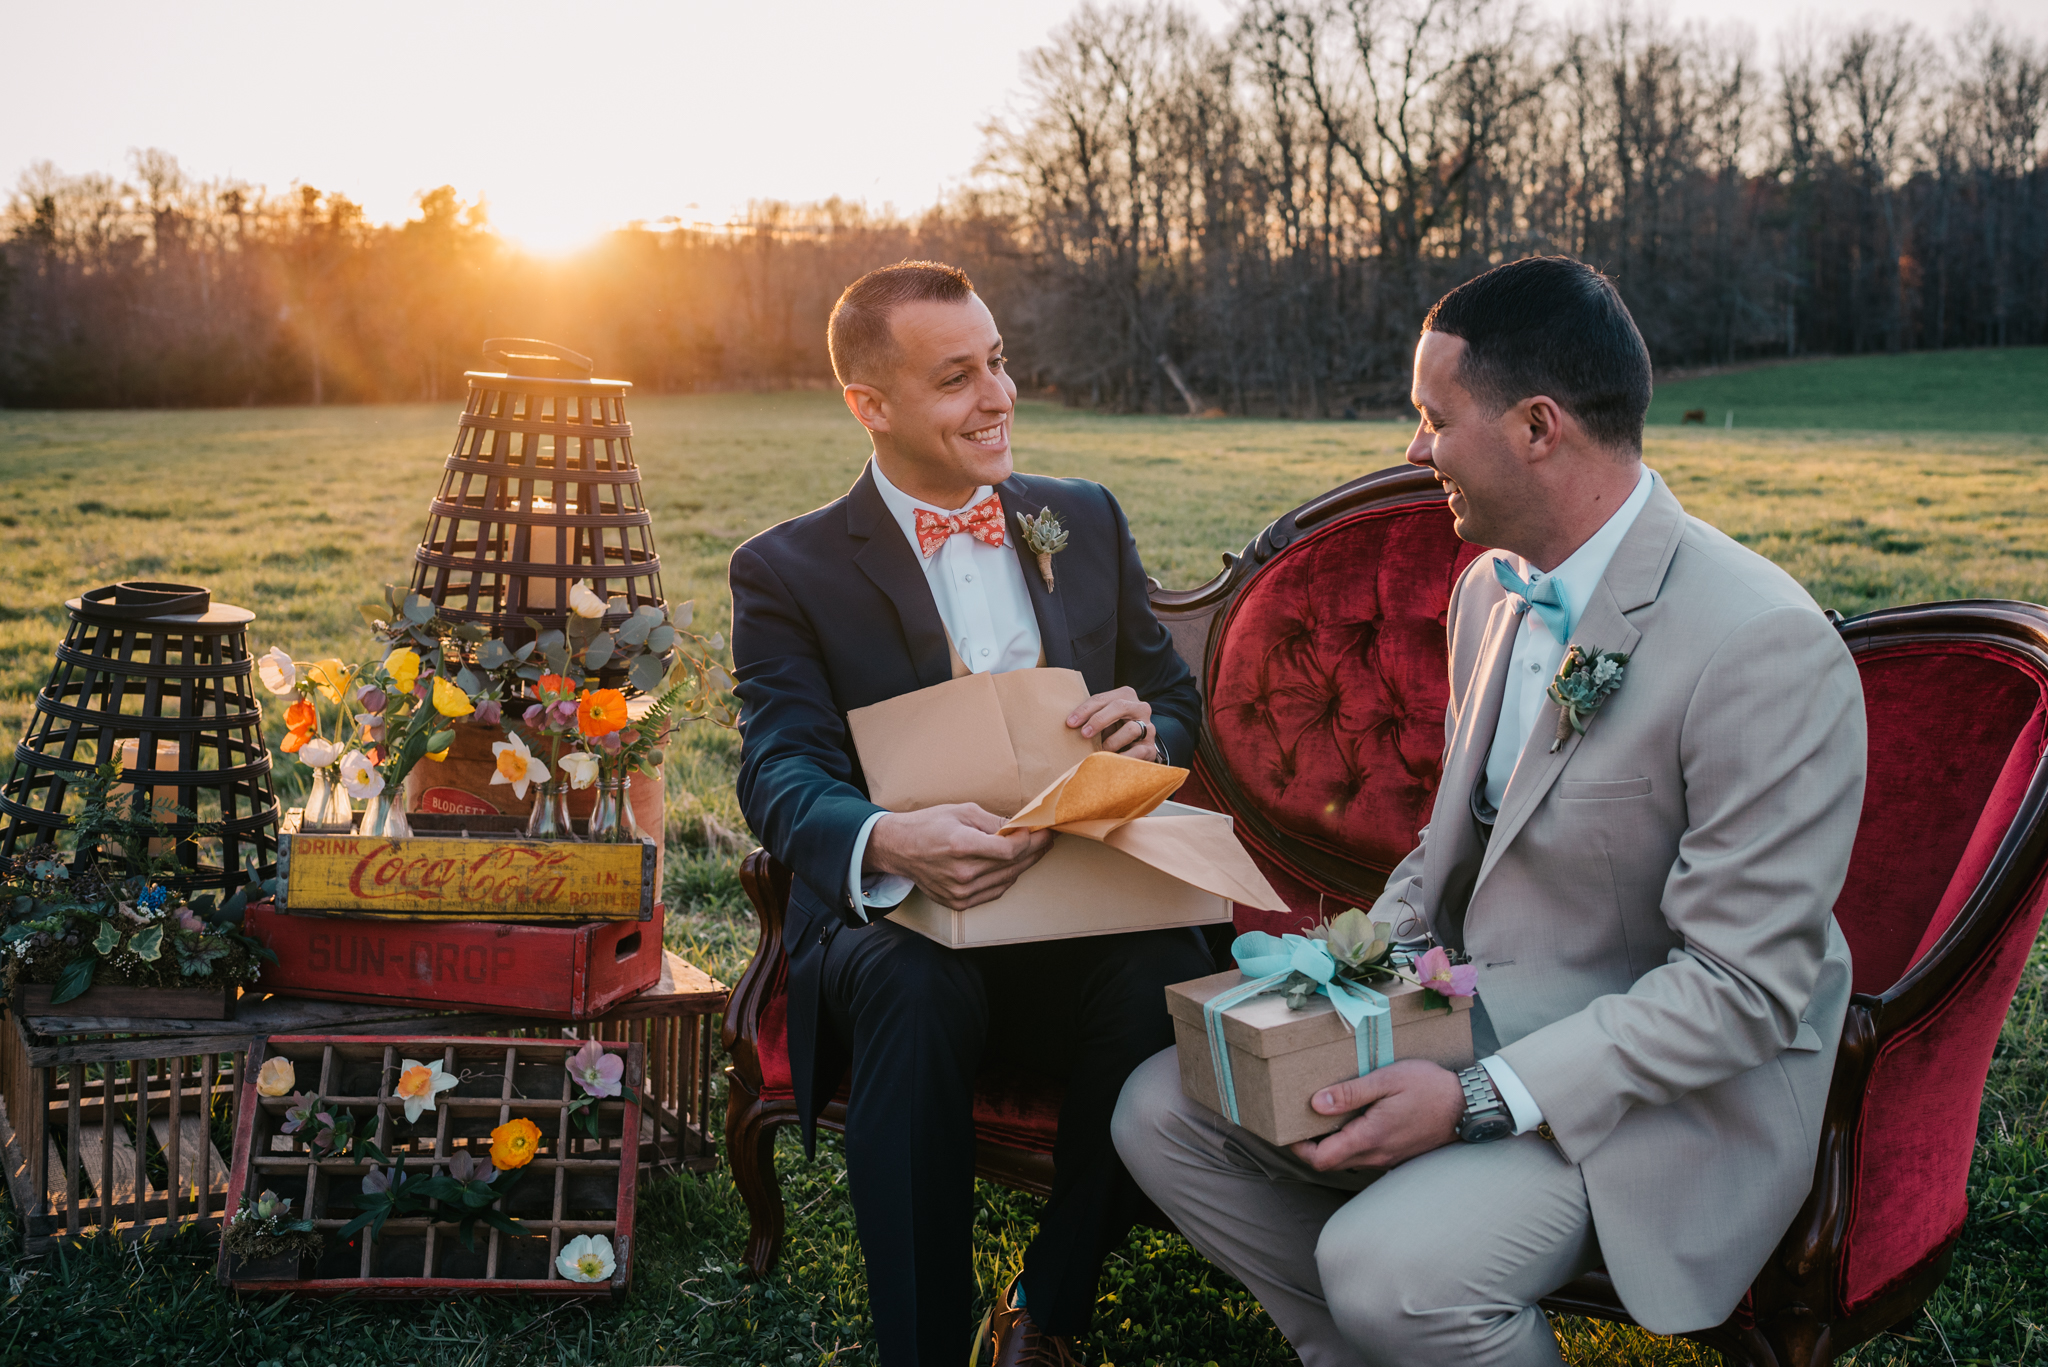 Two-grooms-exchange-gifts-at-windy-hill-farm